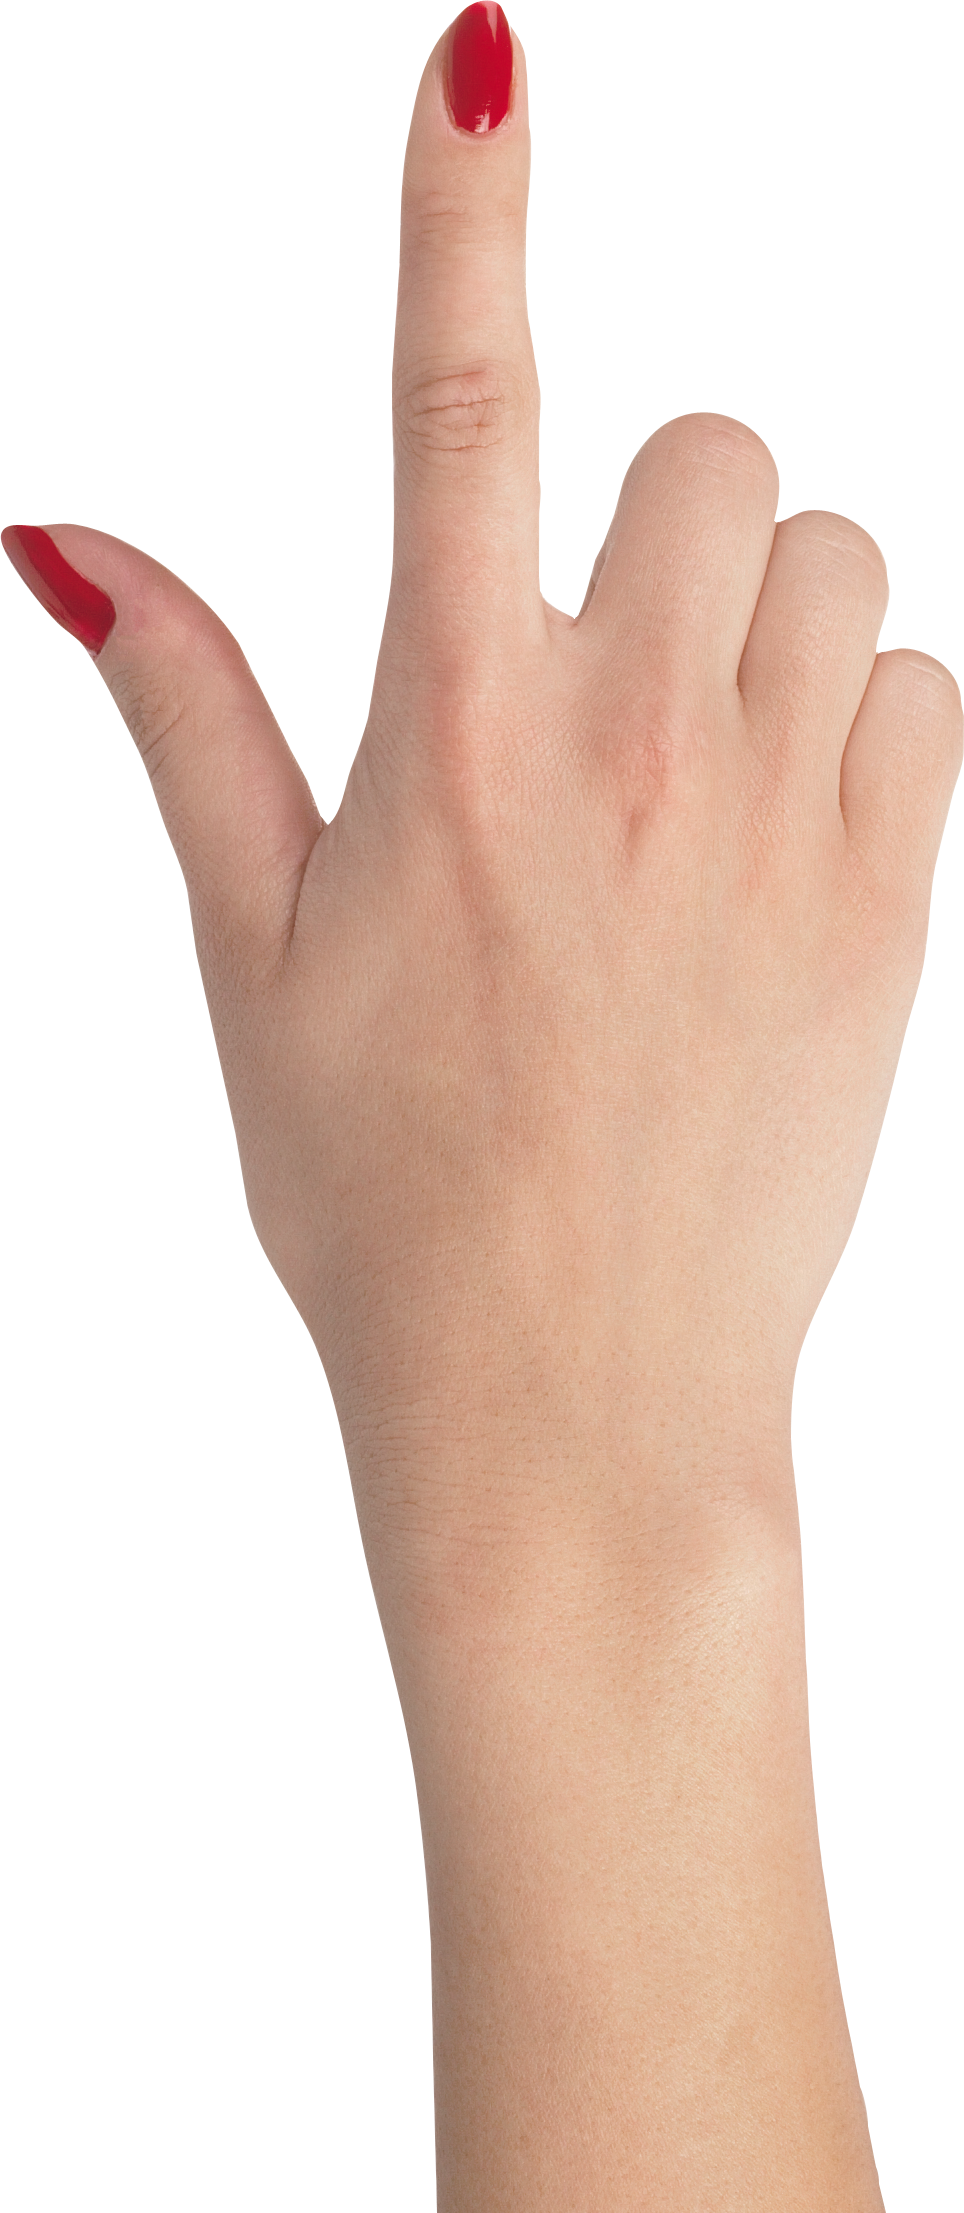 One finger hand with red nails, hands PNG, hand image free